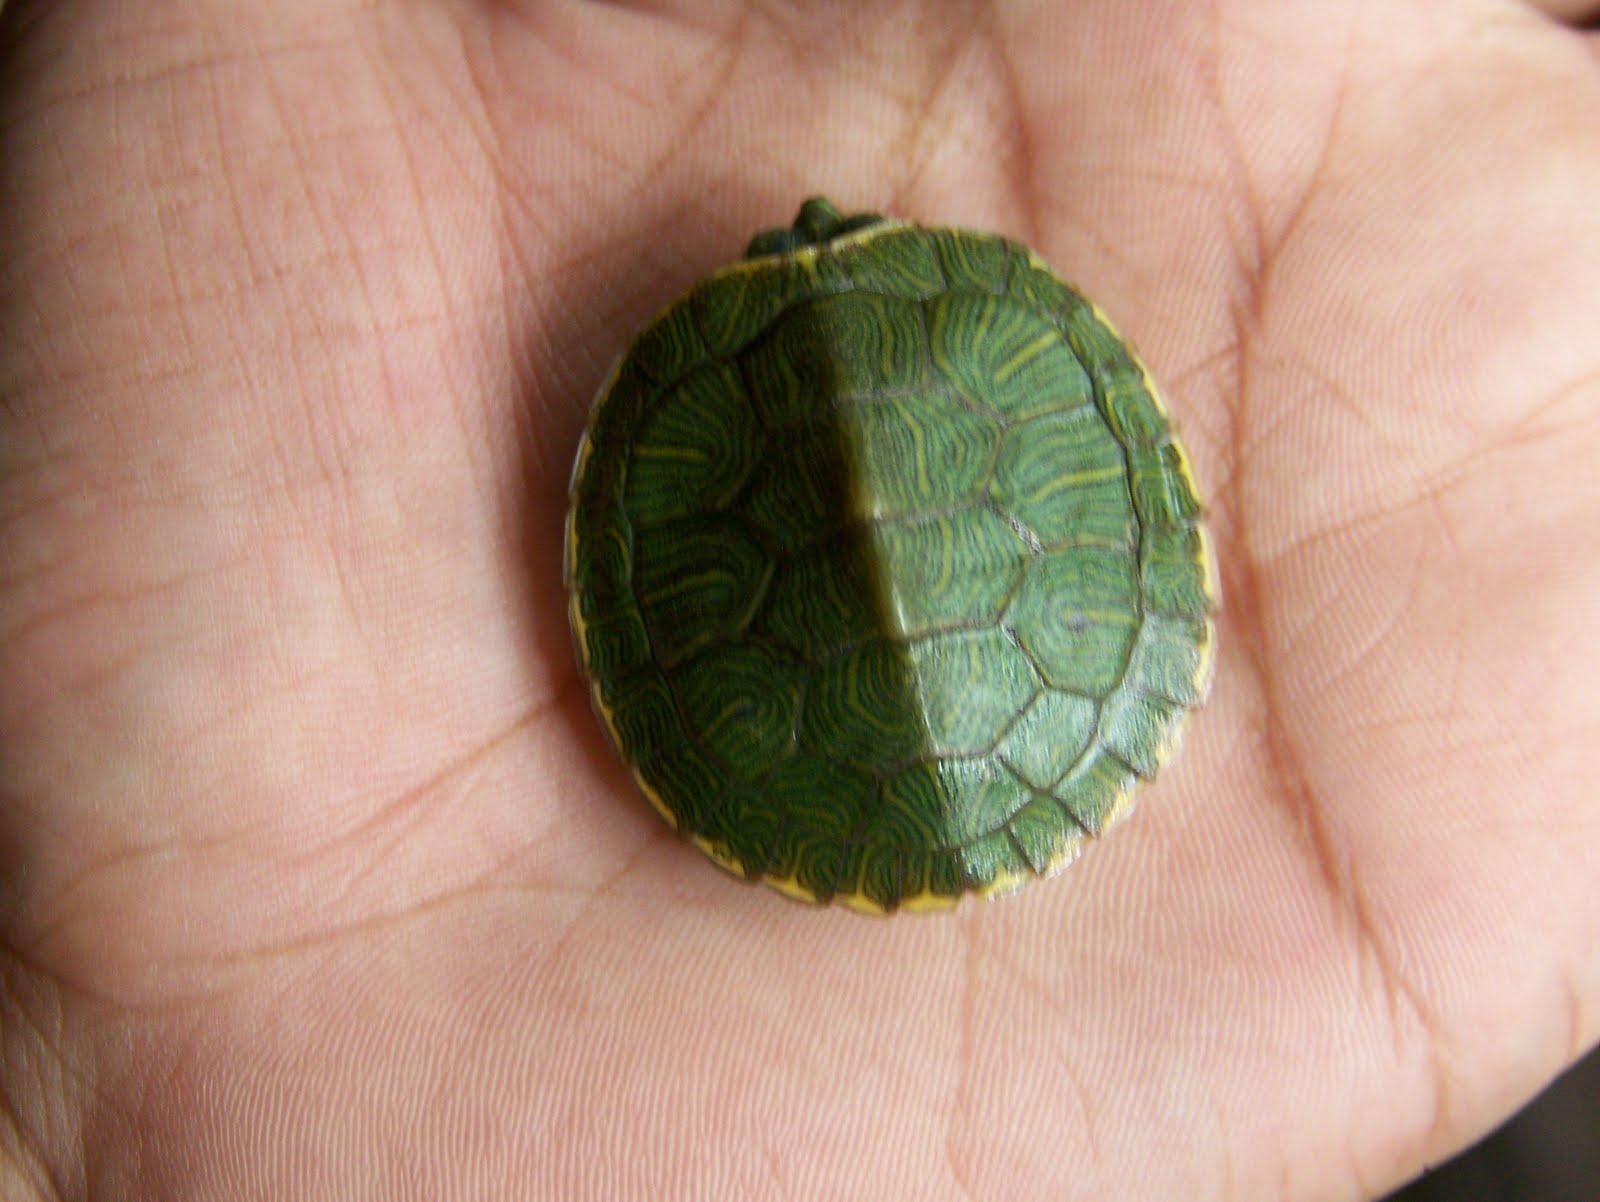 Pet turtle care guide for beginers: July 2010